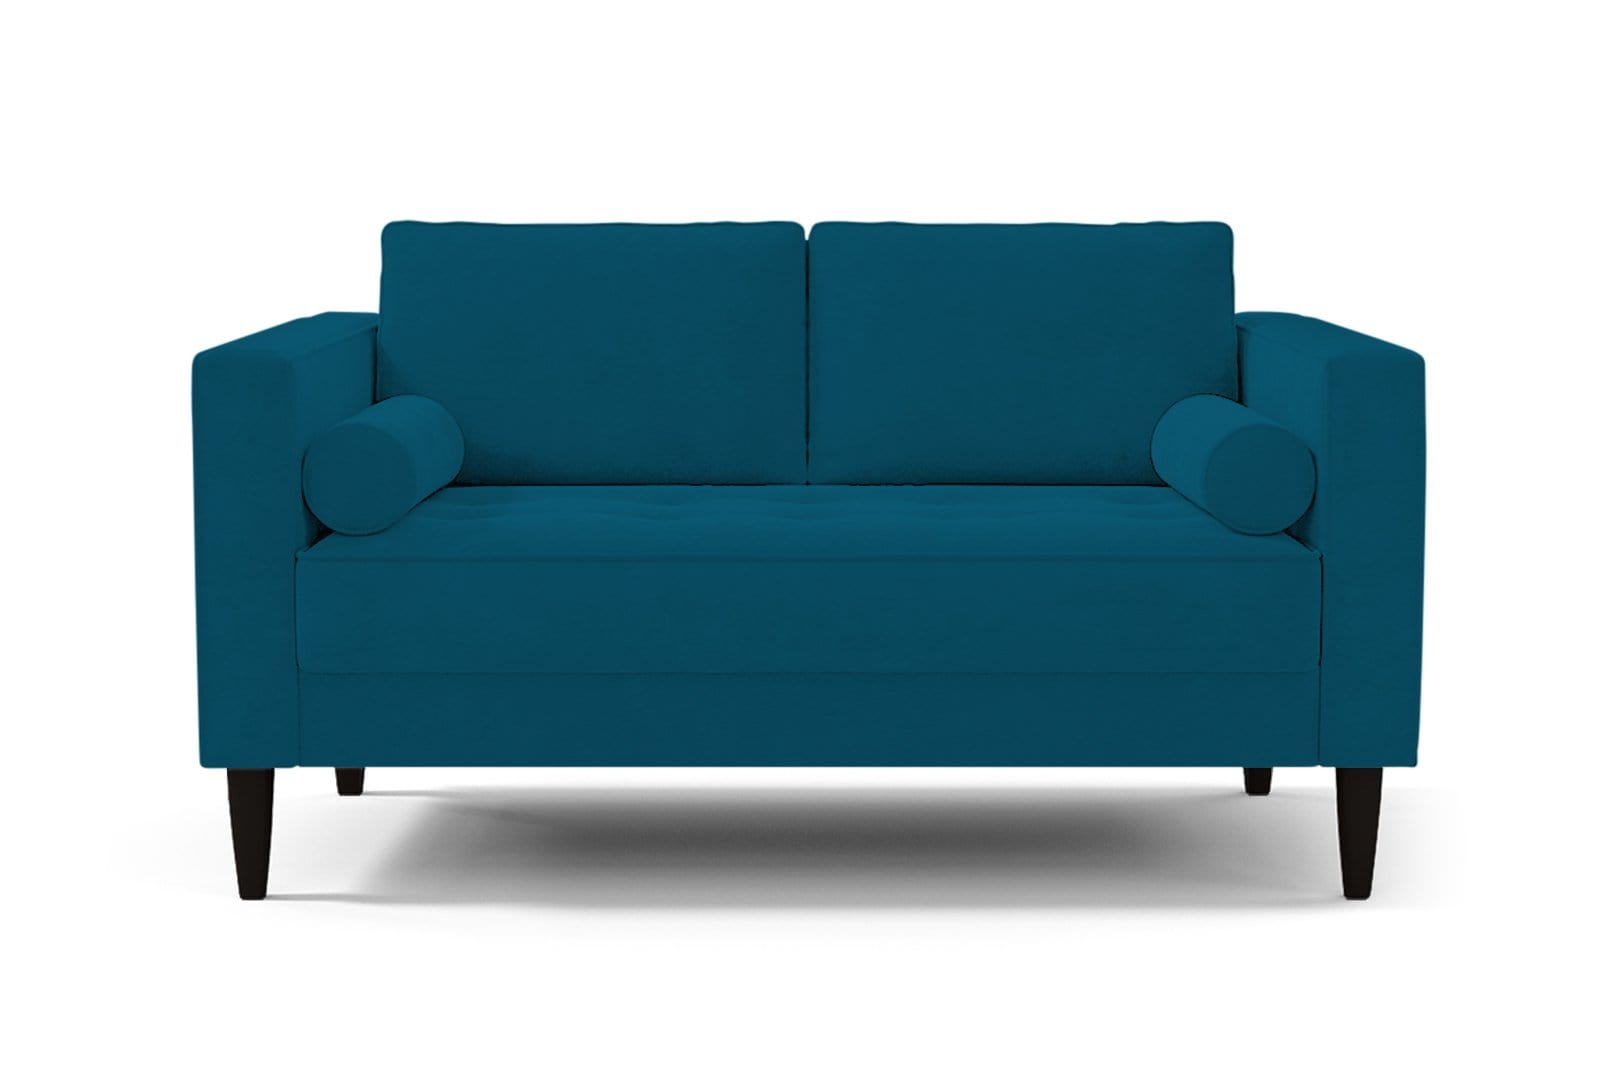 Delilah Loveseat - Blue - Small Space Modern Couch Made in the USA - Sold by Apt2B